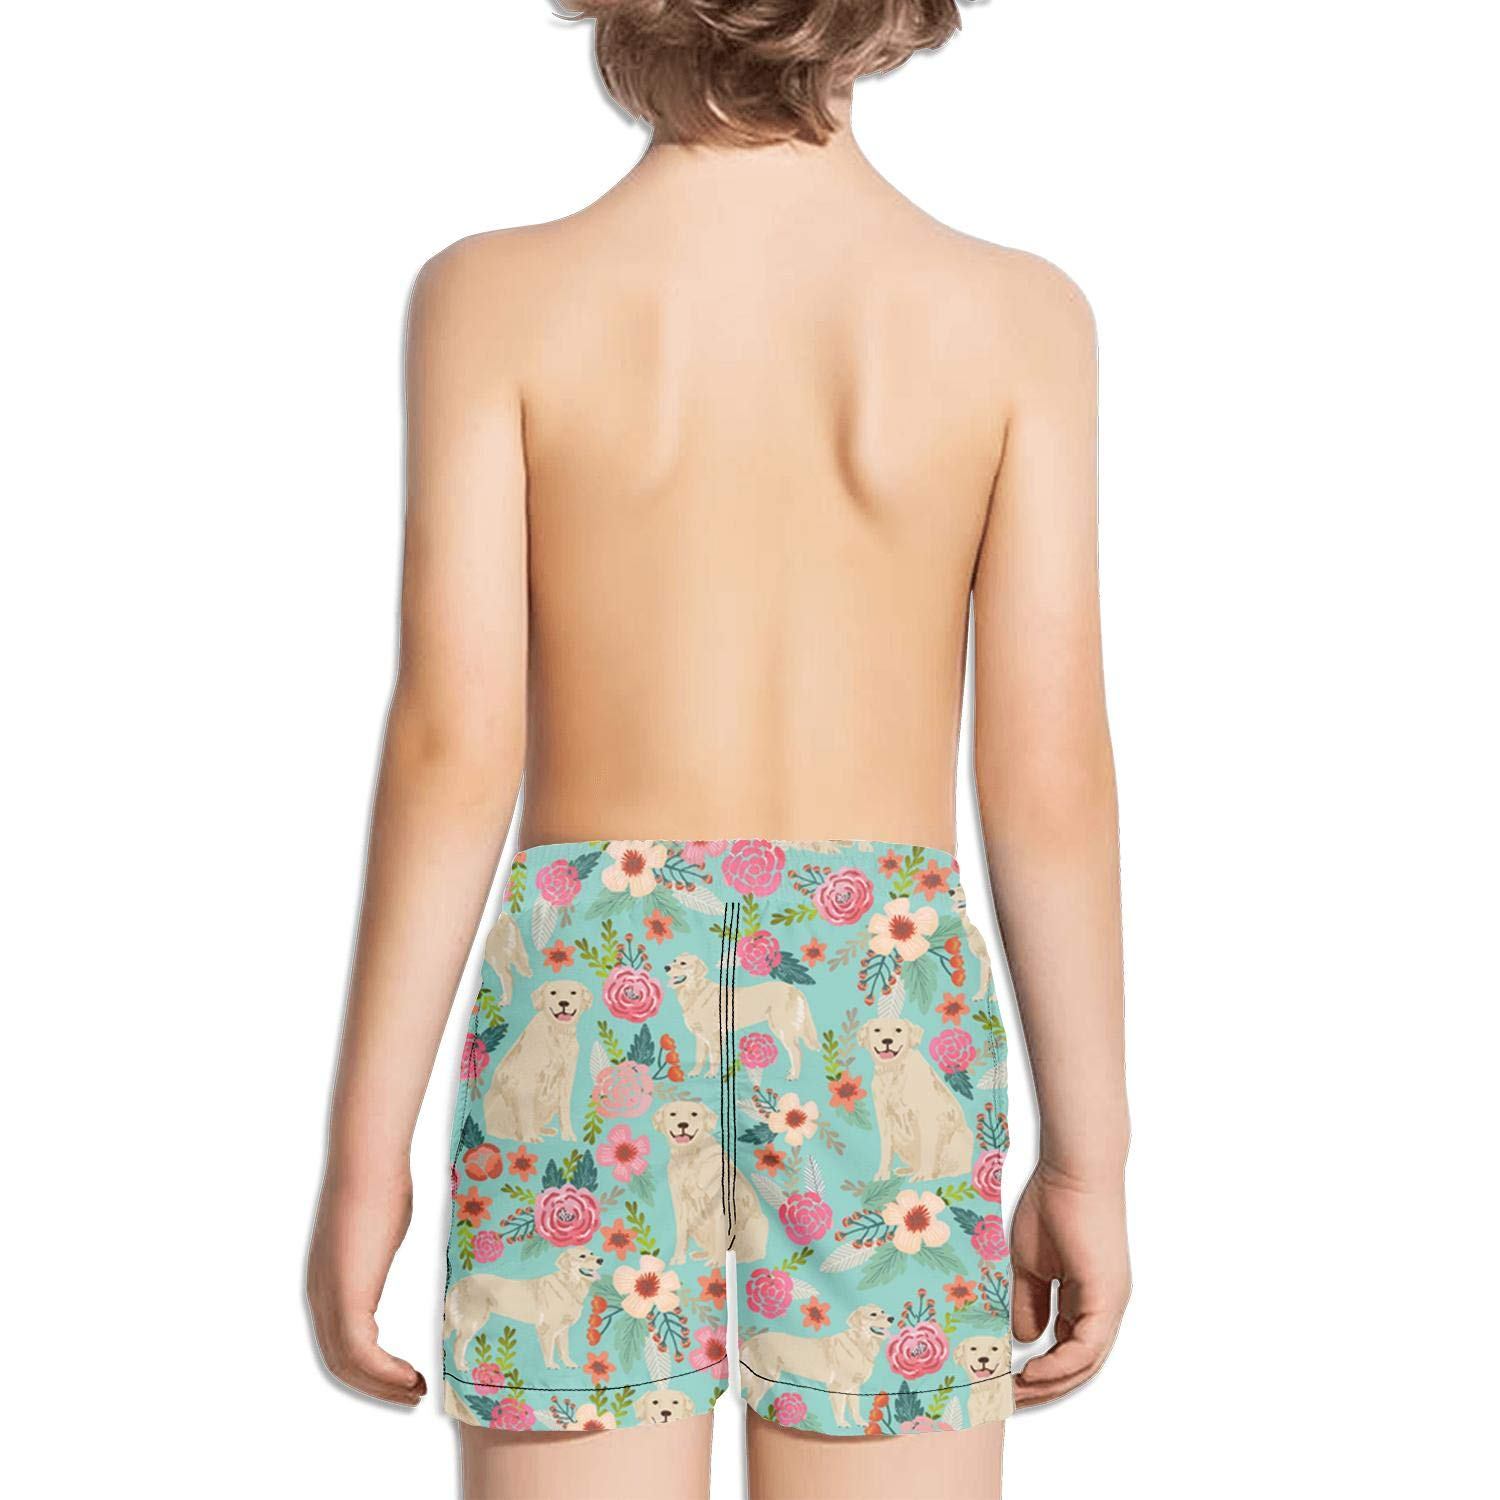 Ouxioaz Boys Swim Trunk German Shorthaired Pointer and Floral Beautiful Beach Board Shorts